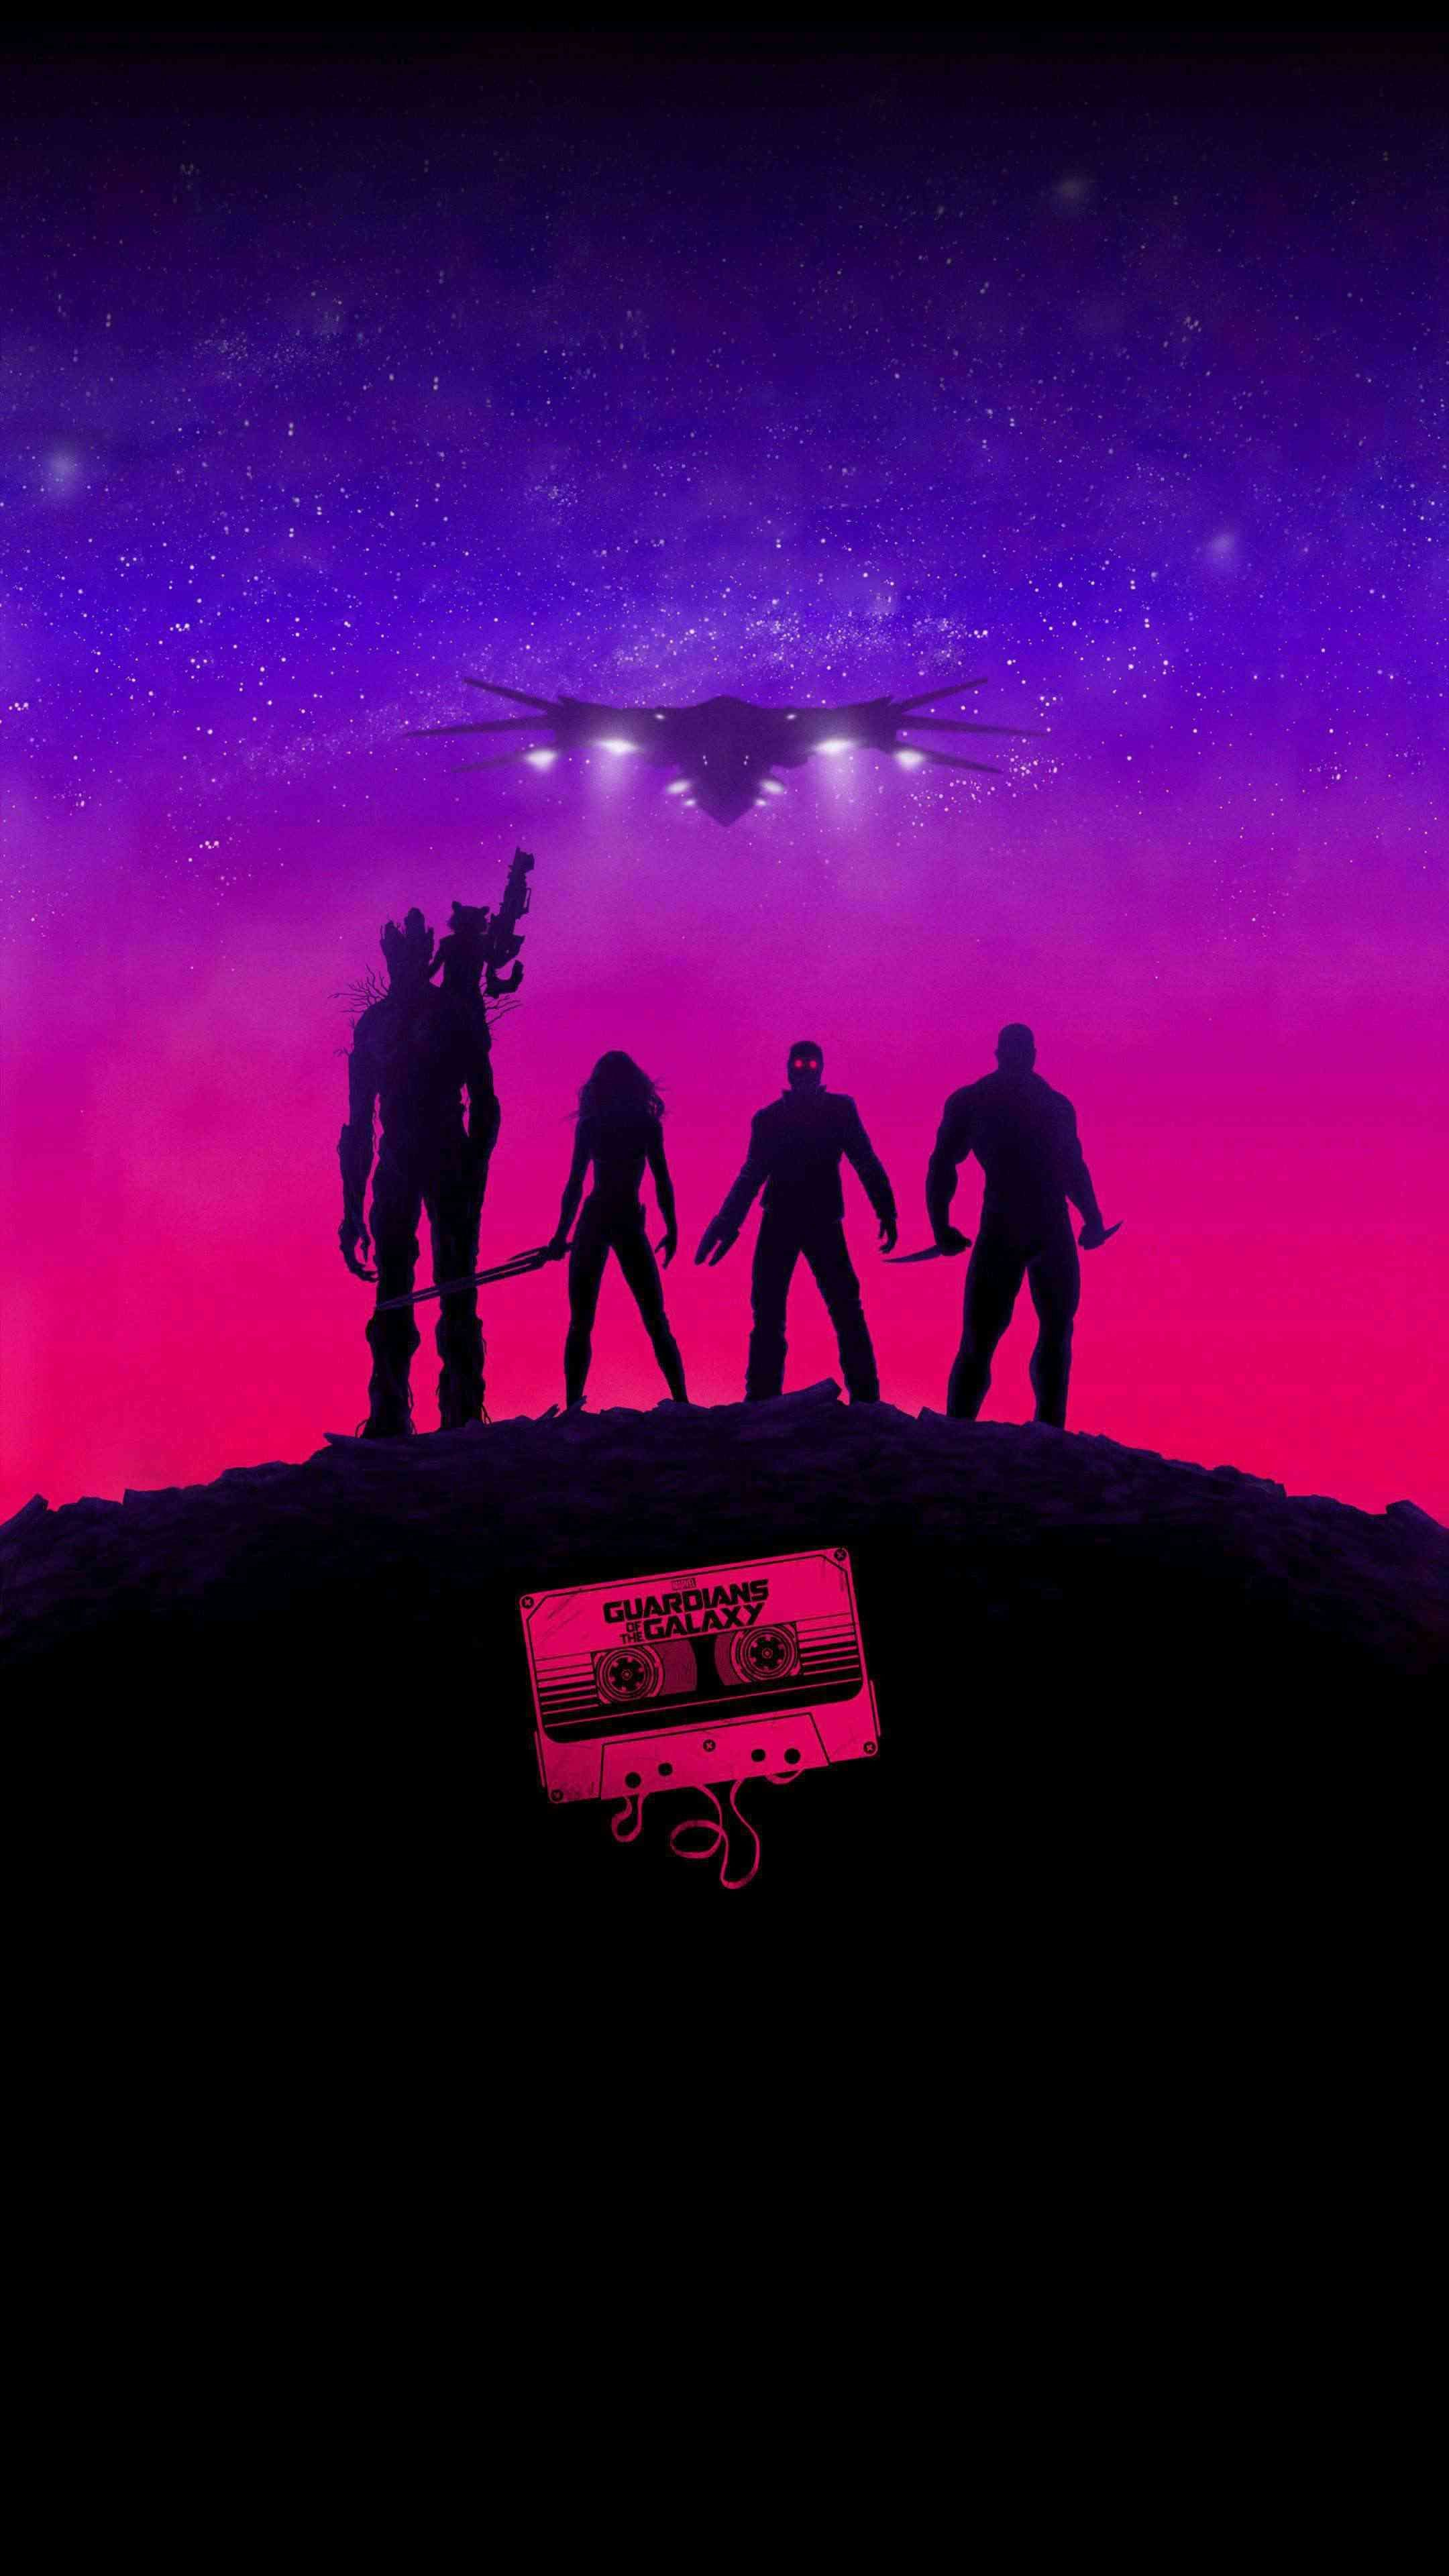 Wallpaper Guardians Galaxy Iphone The Of Hdguardians Of The Galaxy Hd Iphone Wallpaperguardians Of Th Galaxy Poster Galaxy Movie Guardians Of The Galaxy